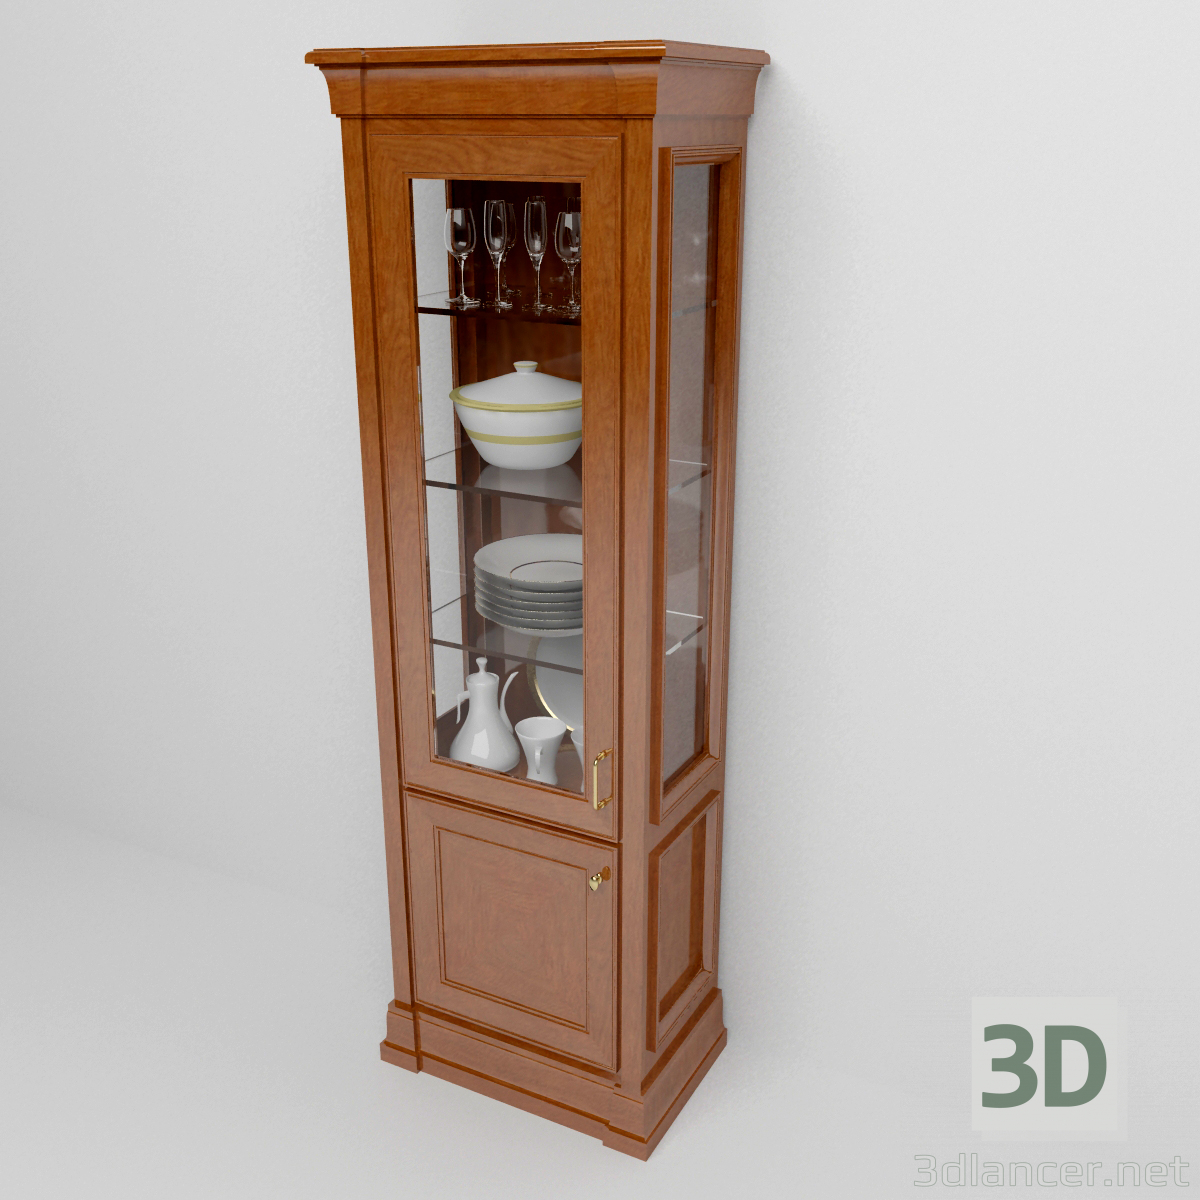 3d model plato de escaparate - vista previa